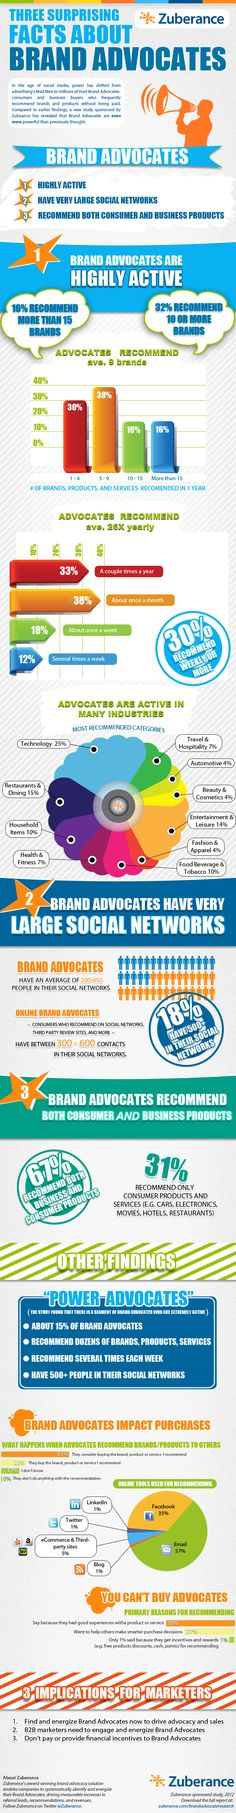 Today's brand advocates are active online, have very large #social networks and recommend both consumer and biz products